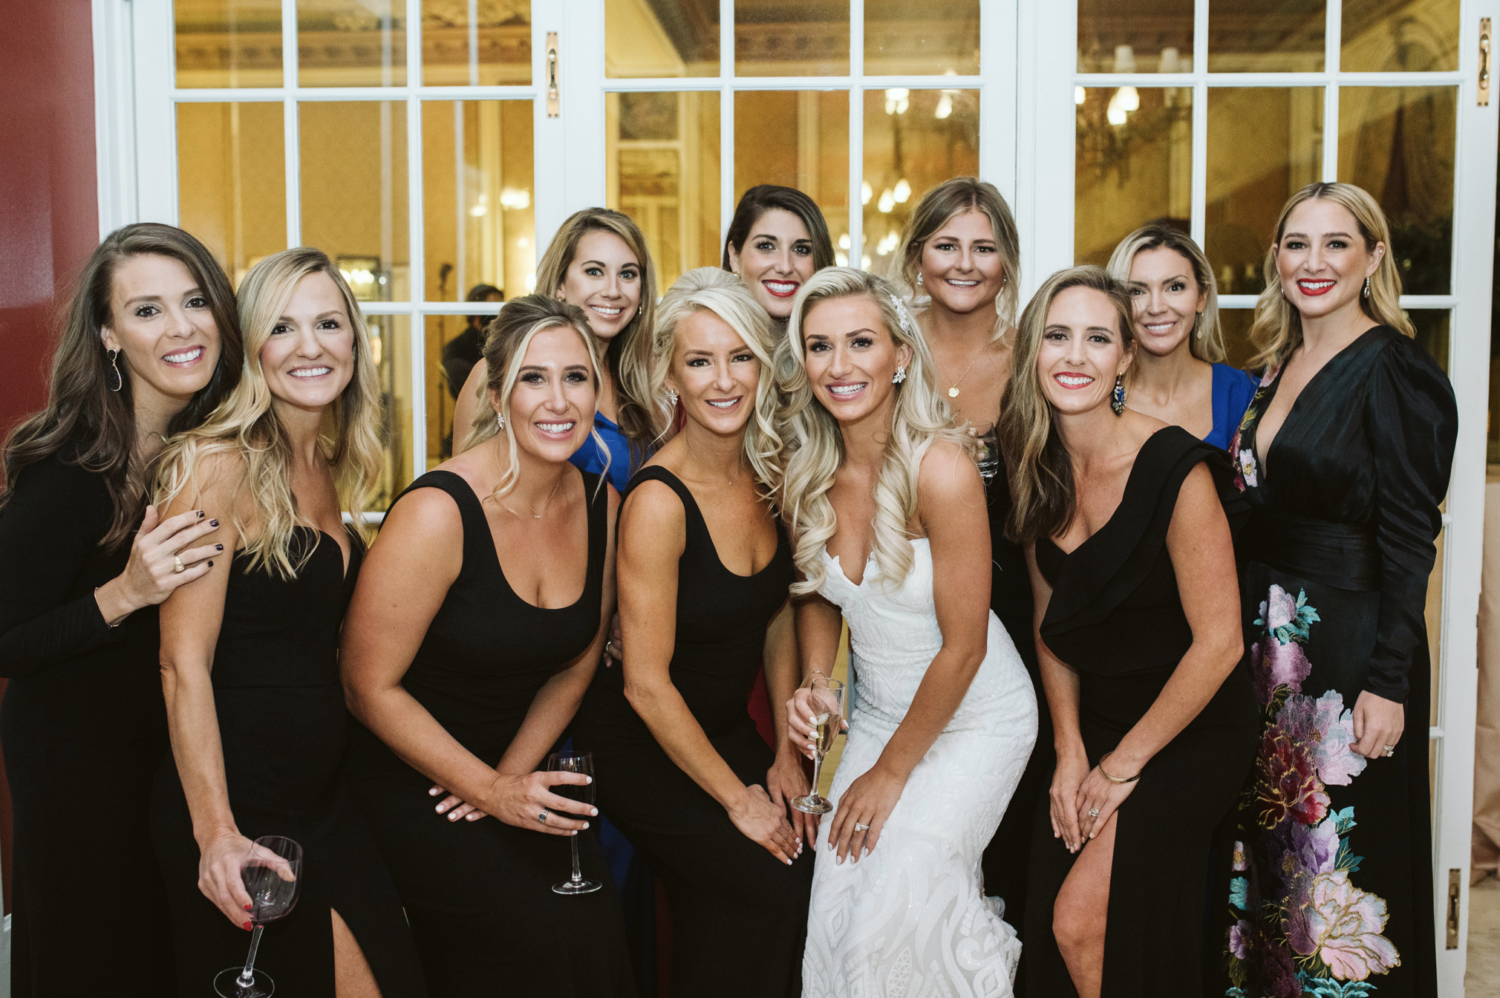 Intimate Wedding Ideas: 6 Tips for Success